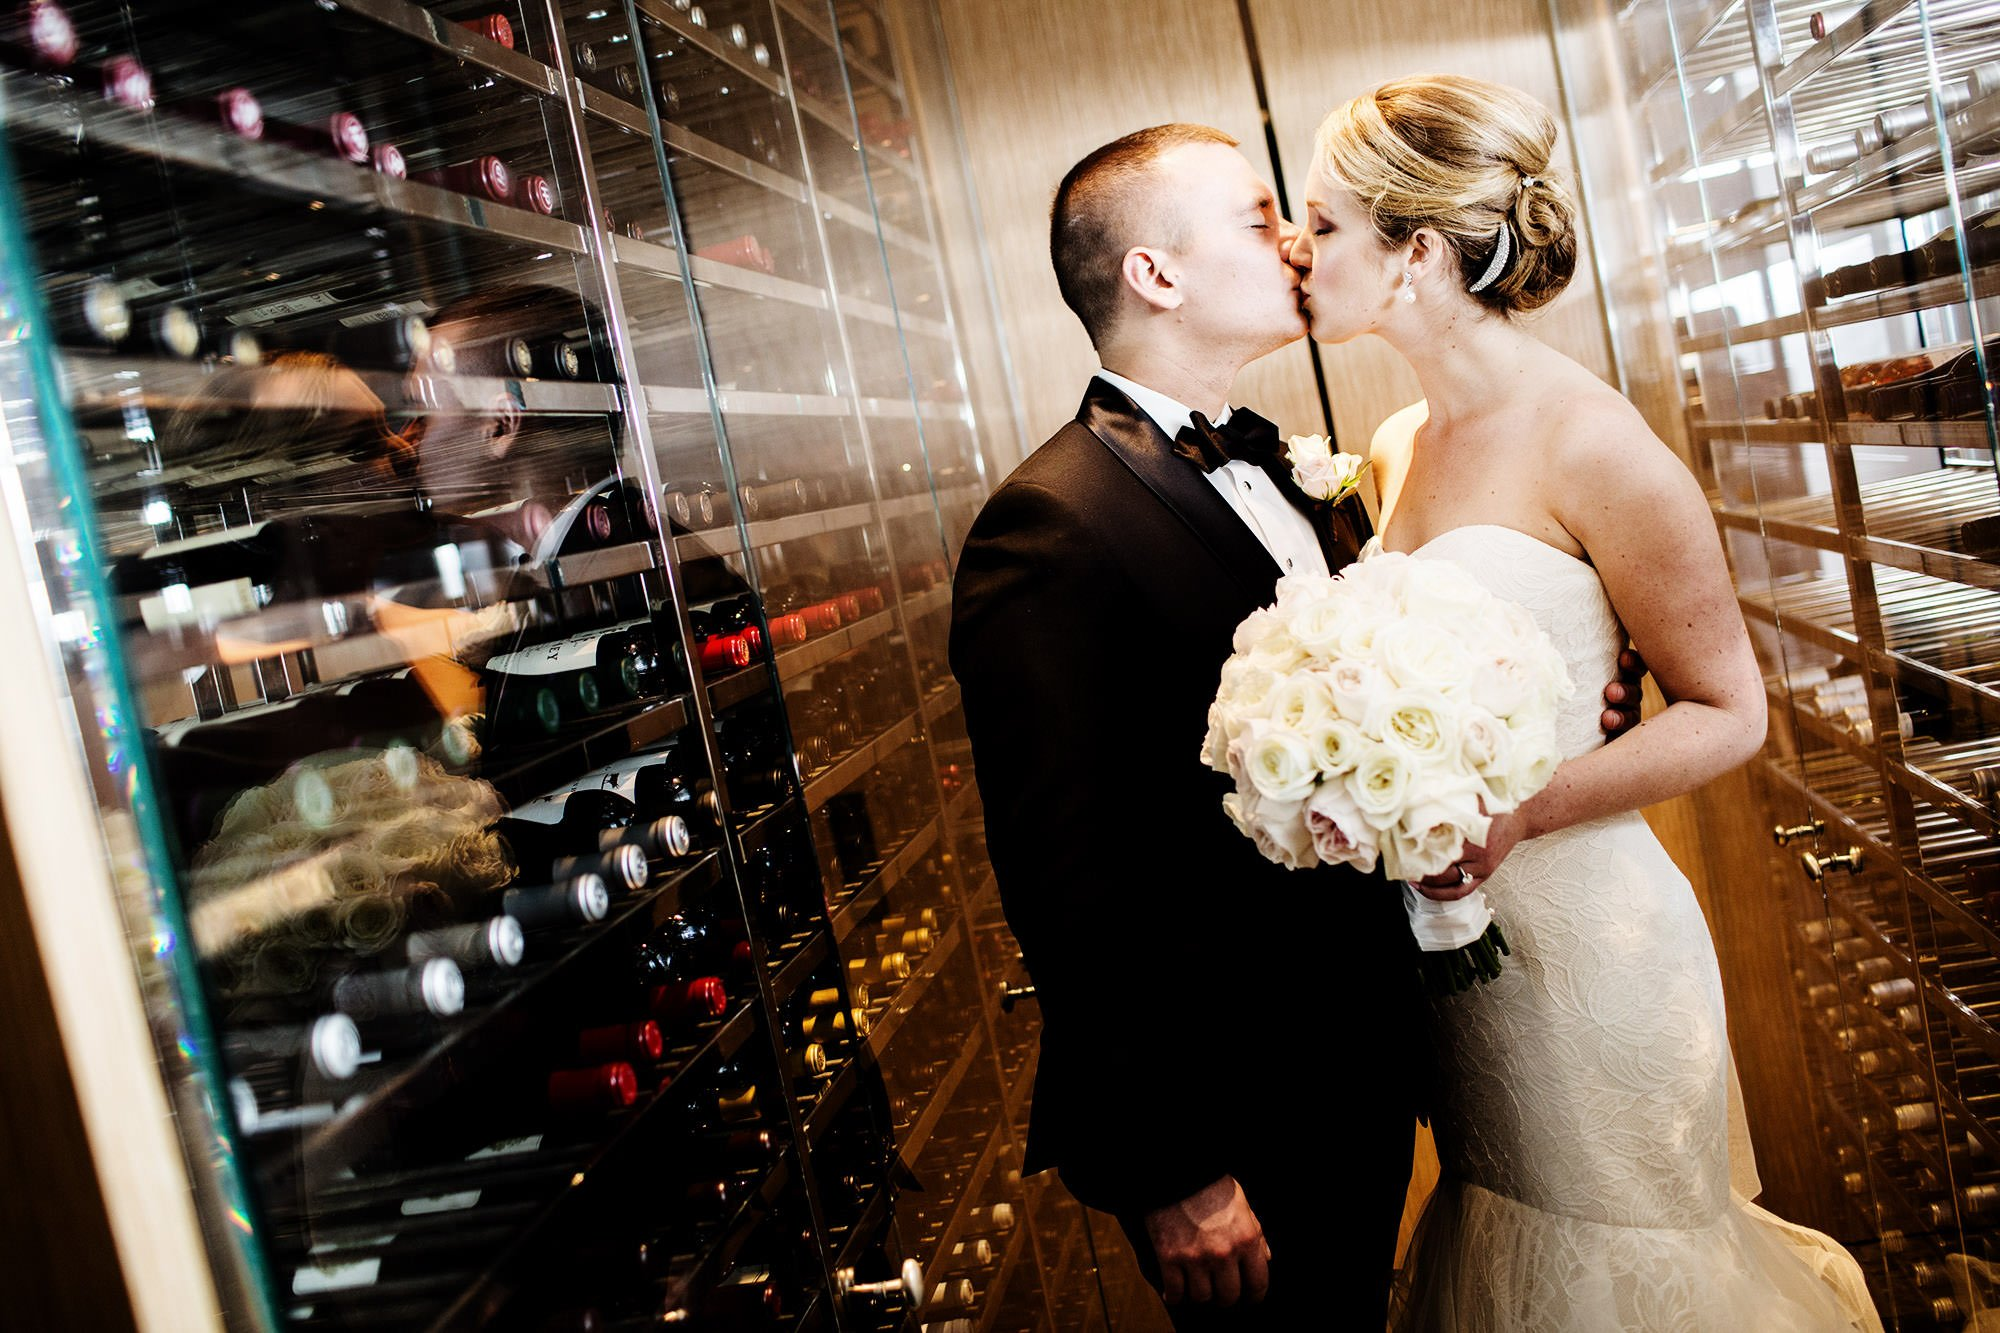 The Bride and Groom kiss in the Park Hyatt DC's wine racks